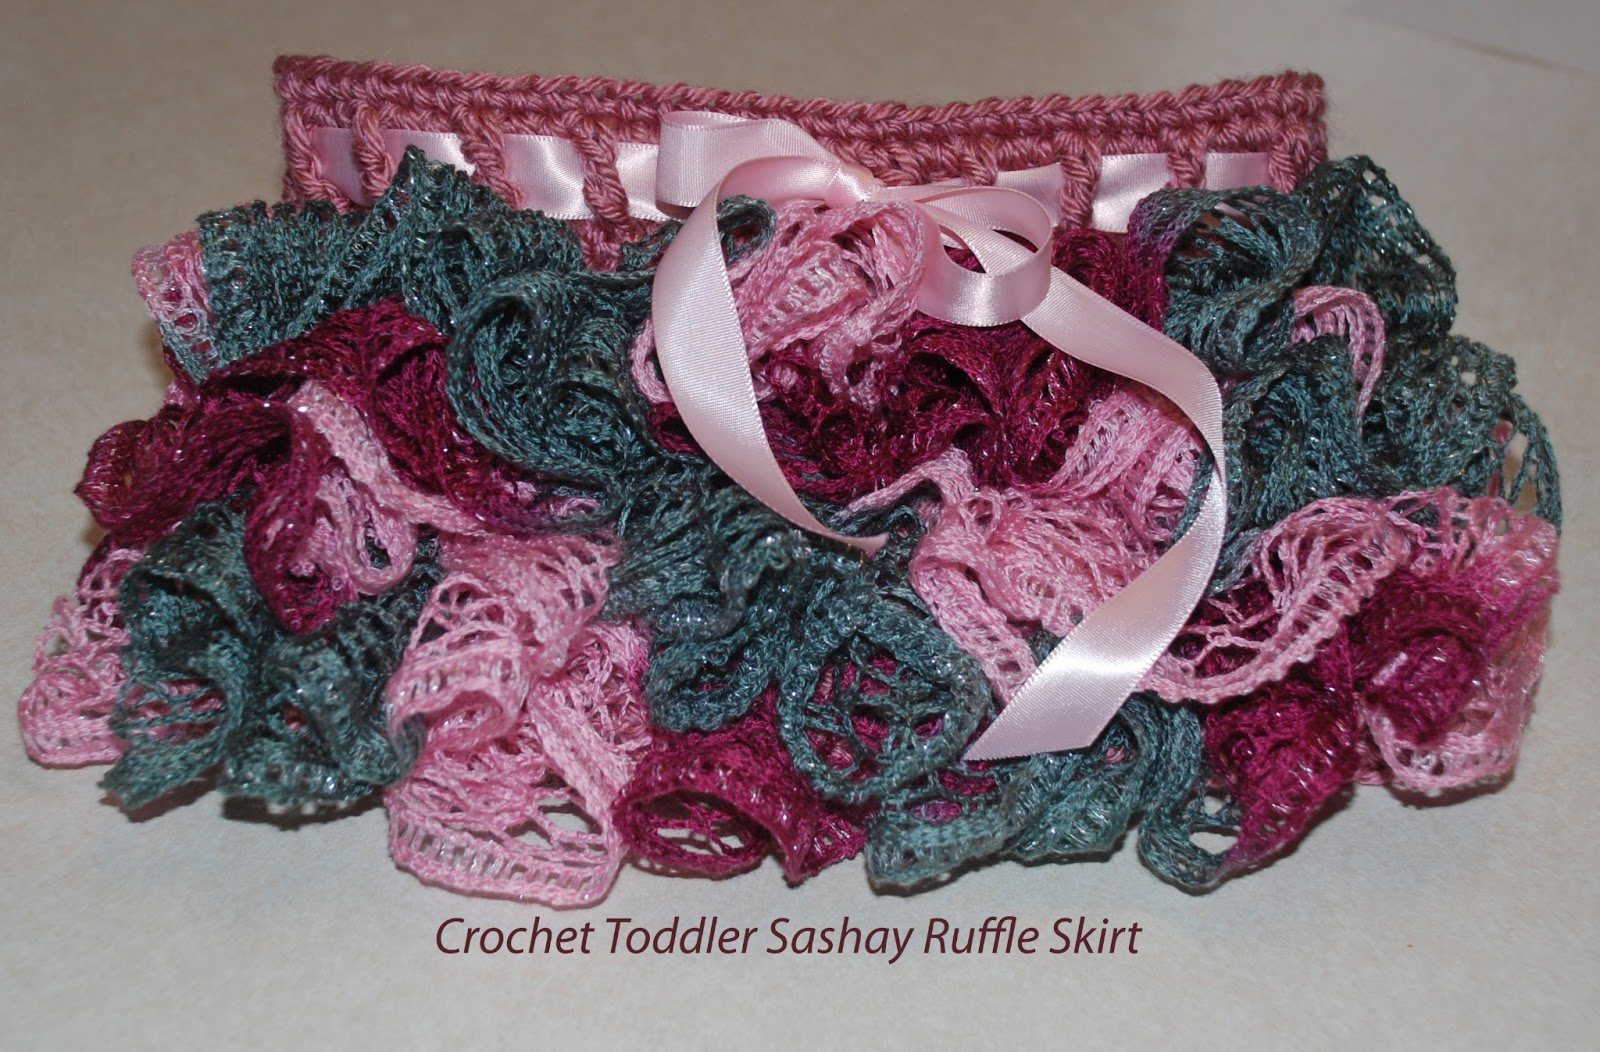 Free Crochet Patterns With Sashay Yarn : Amys Crochet Creative Creations: Crochet Sashay Ruffle ...